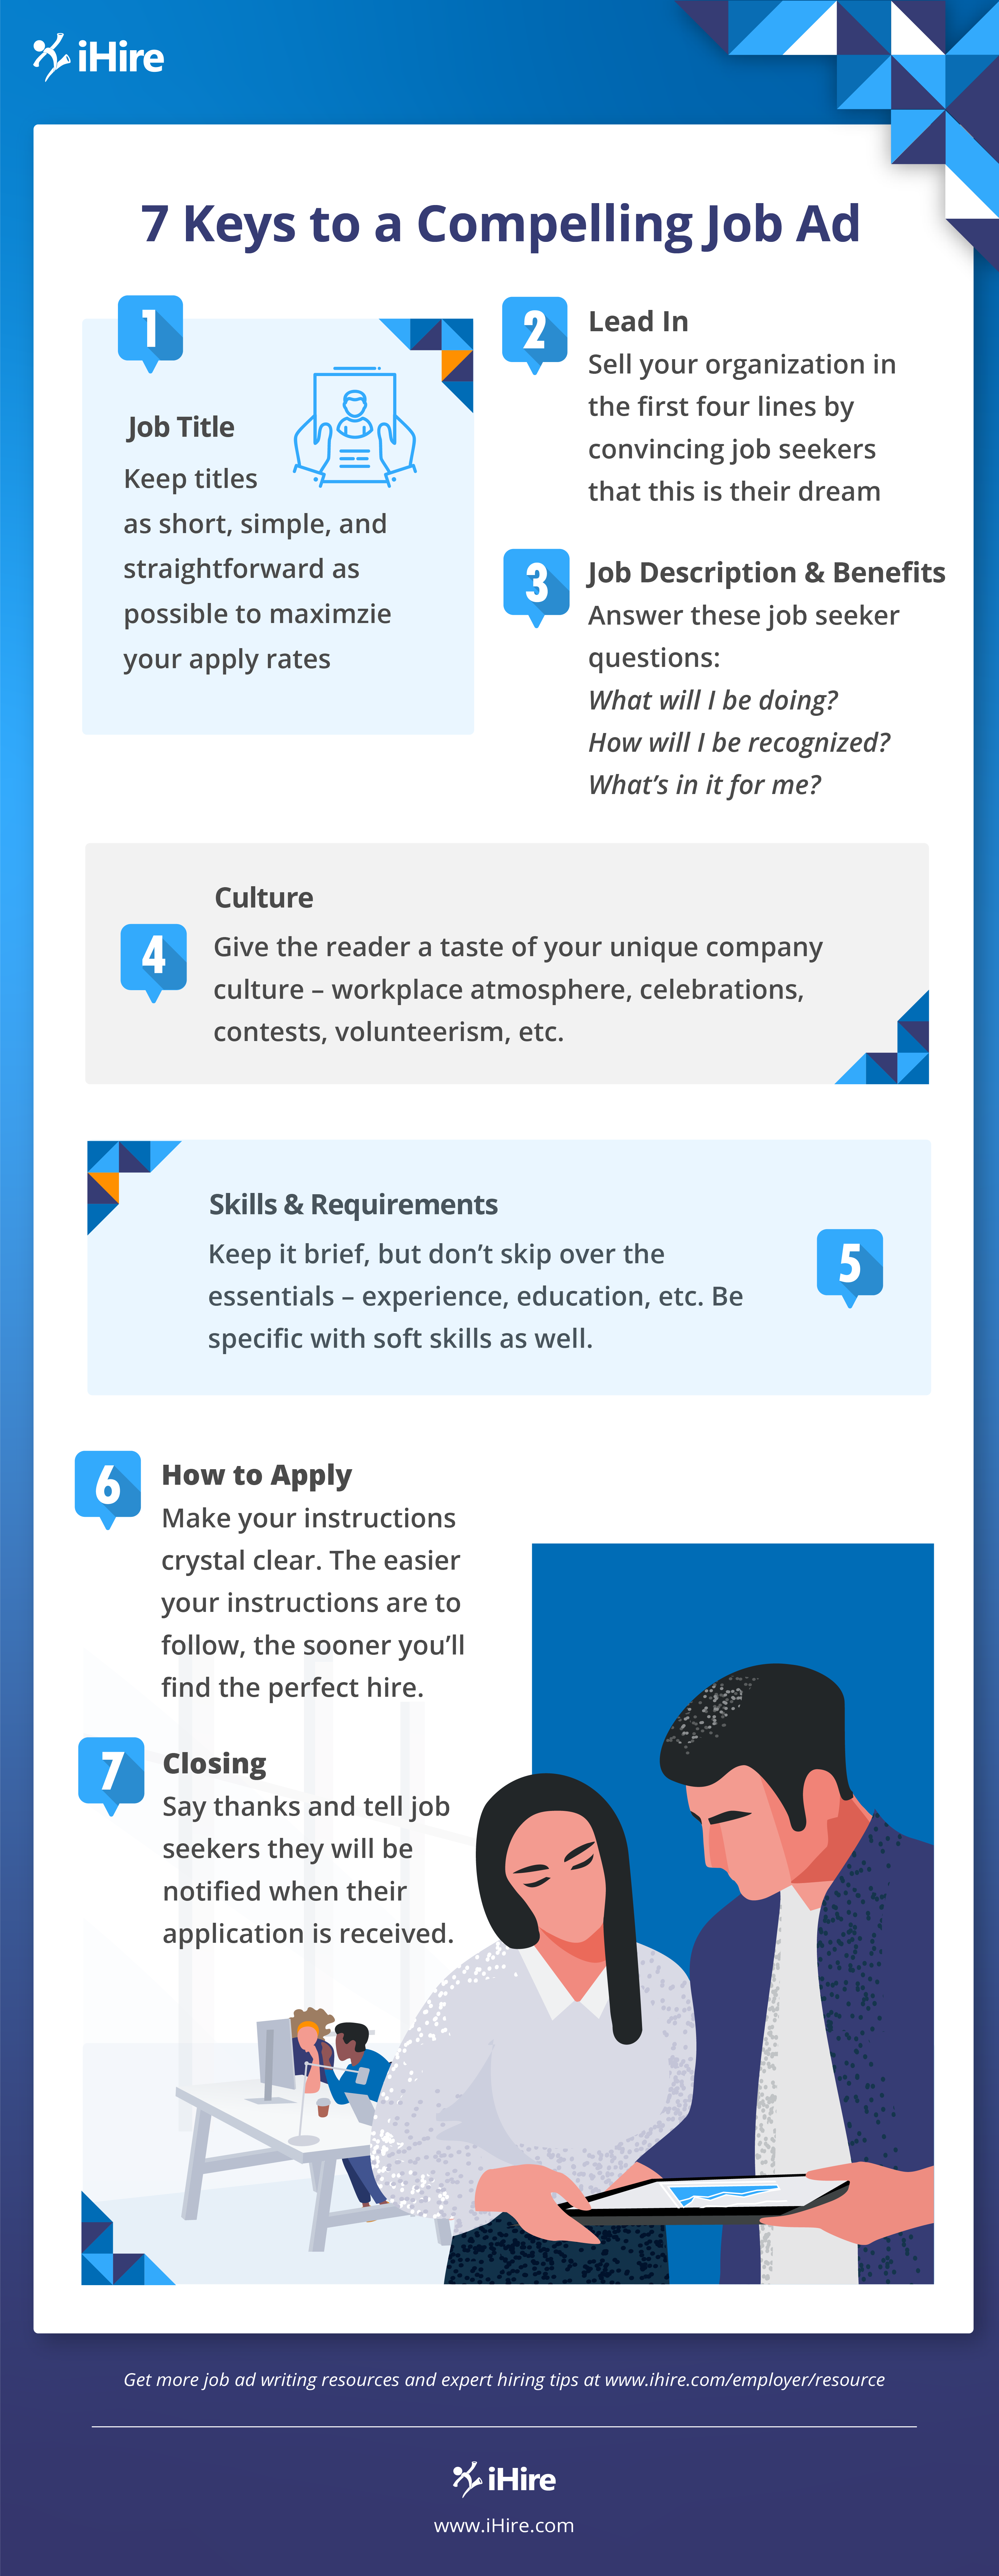 Infographic: 7 Keys to a Compelling Job Ad